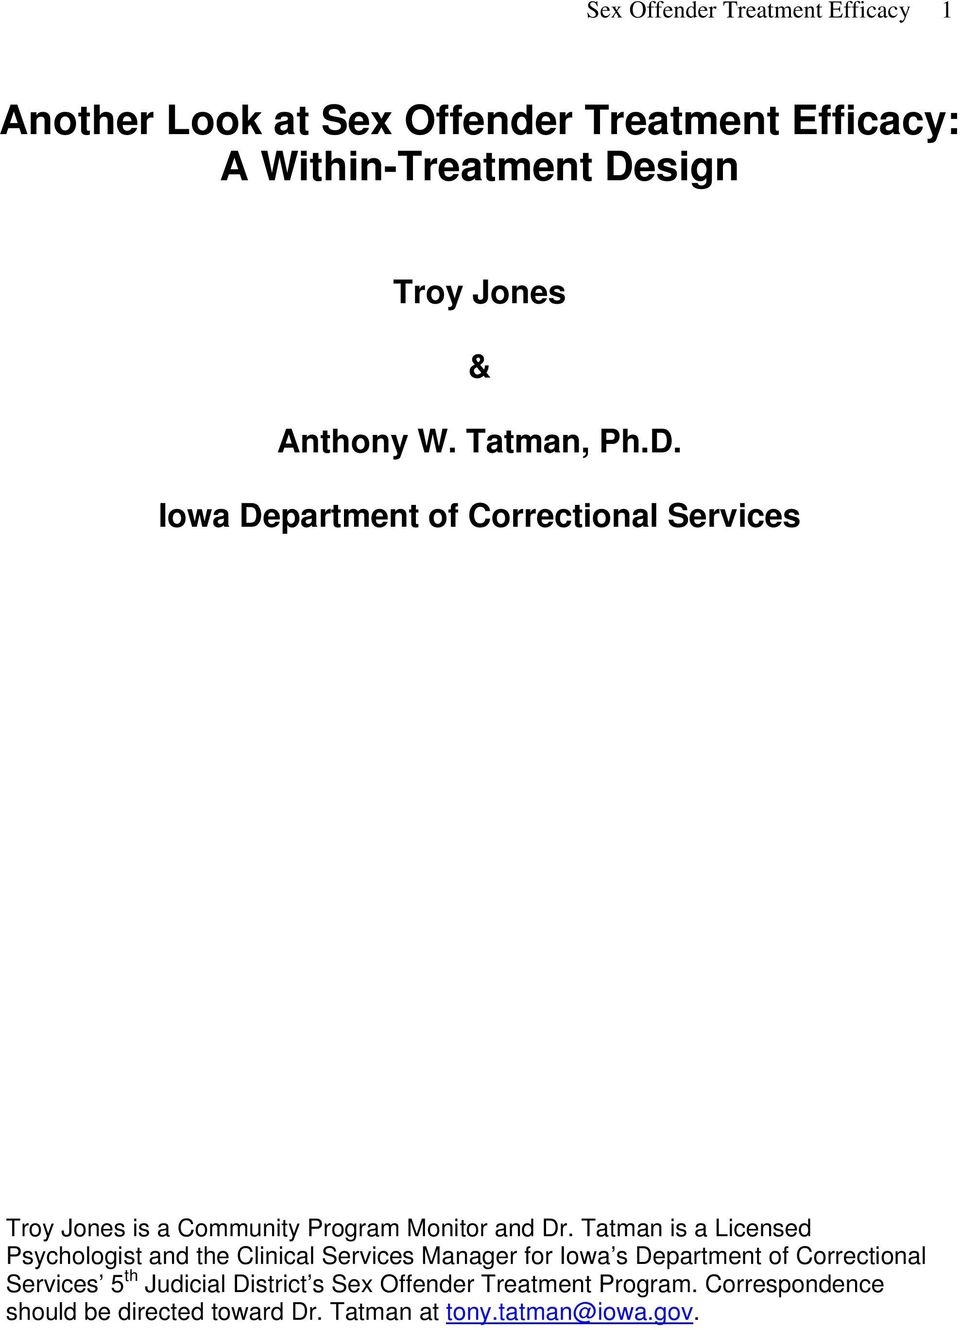 Sex offender treatment providers in iowa